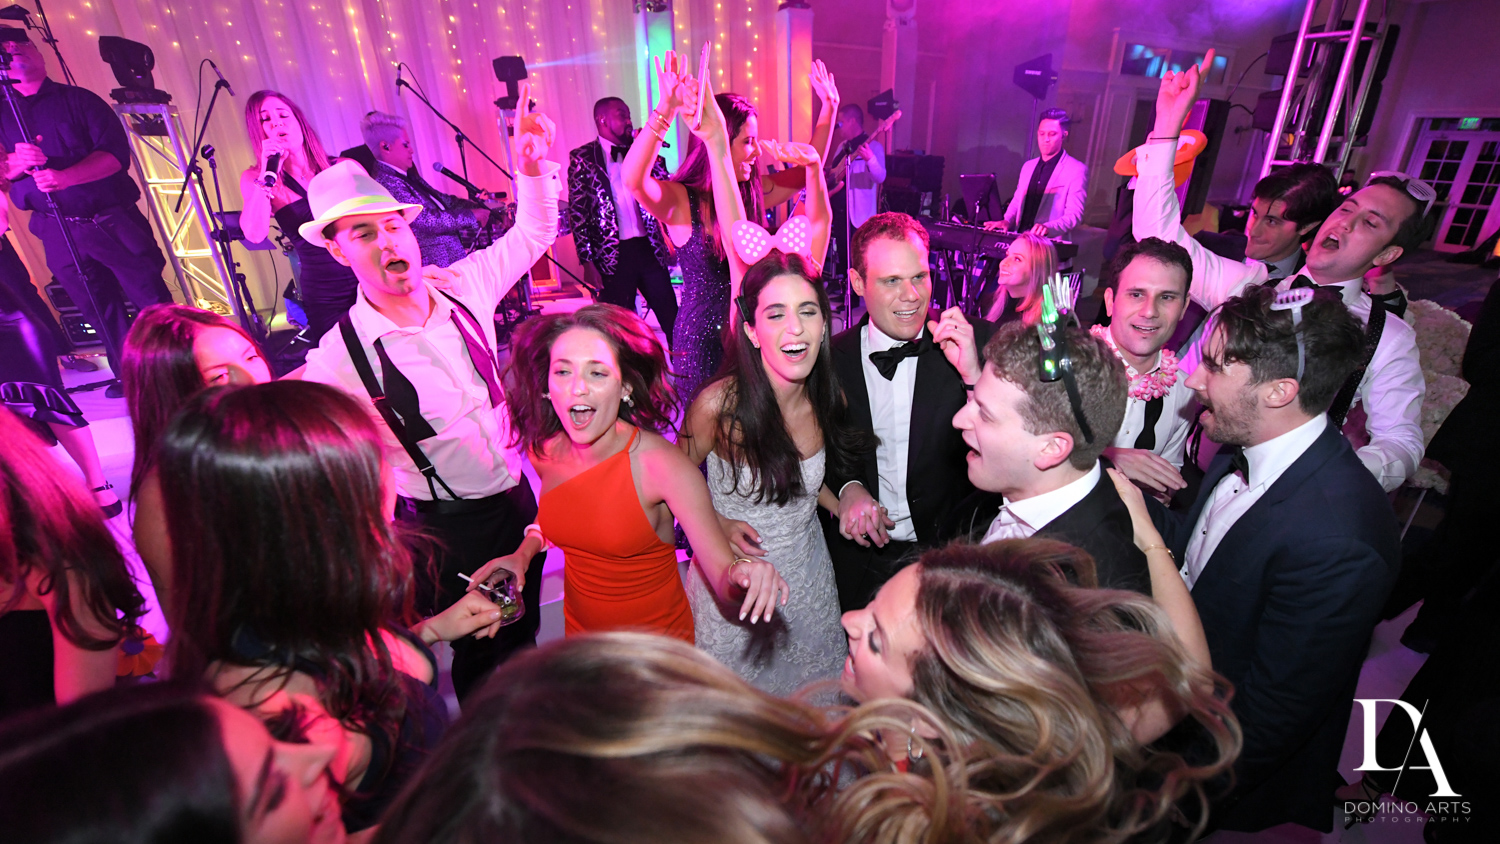 fun party photos from A Ritz Carlton Wedding in Key Biscayne by Domino Arts Photography